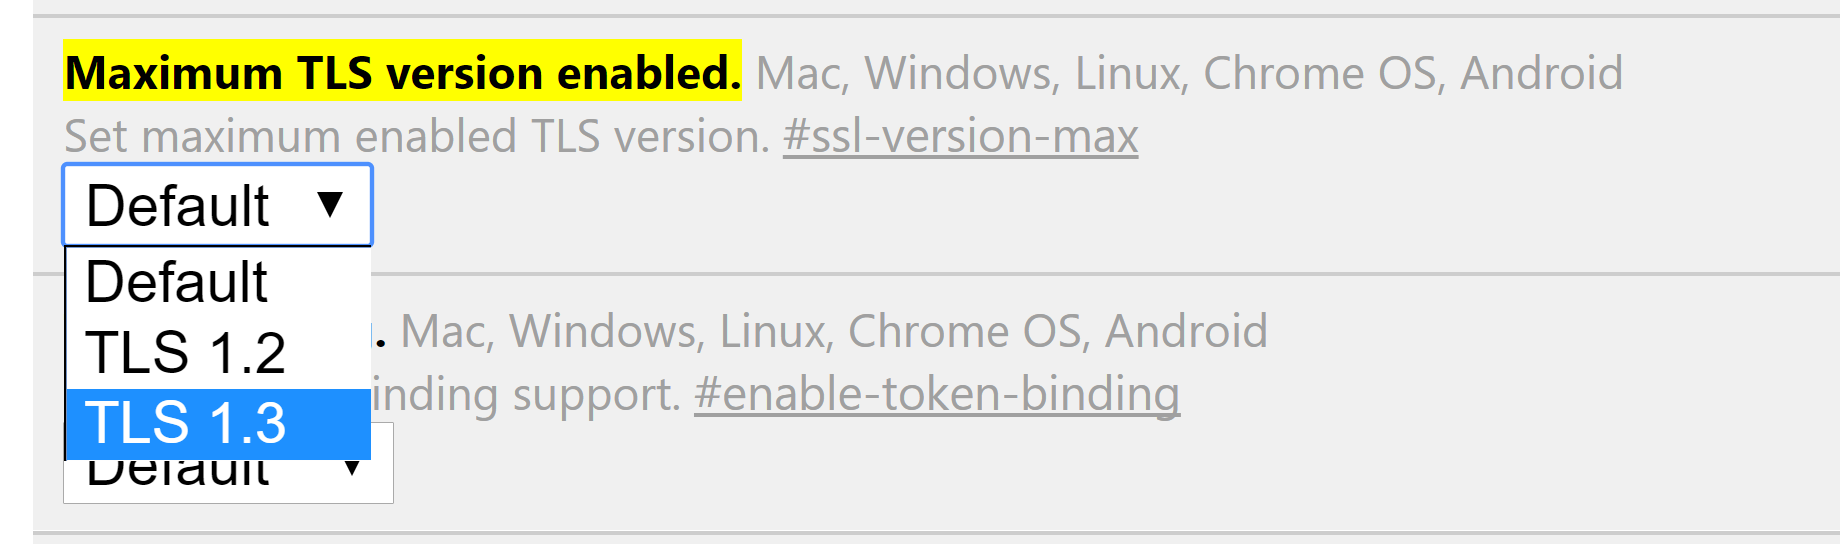 Maximum TLS version in Chrome